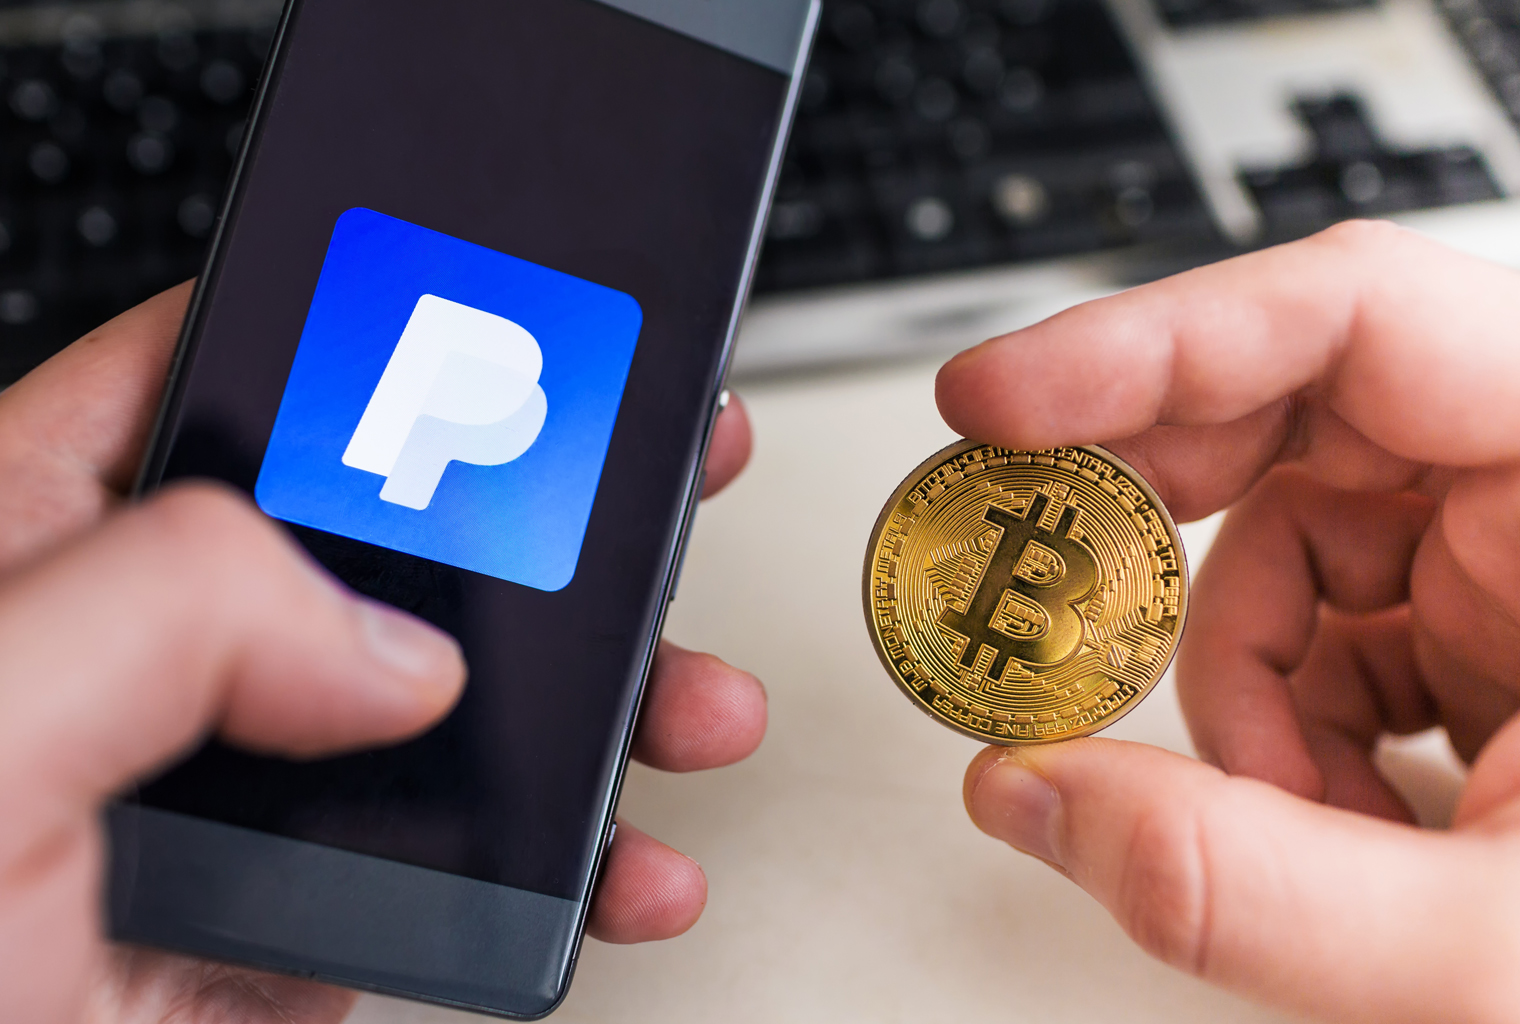 OKCoin Exec Says PayPal Will Boost Crypto Adoption, If Rumors True